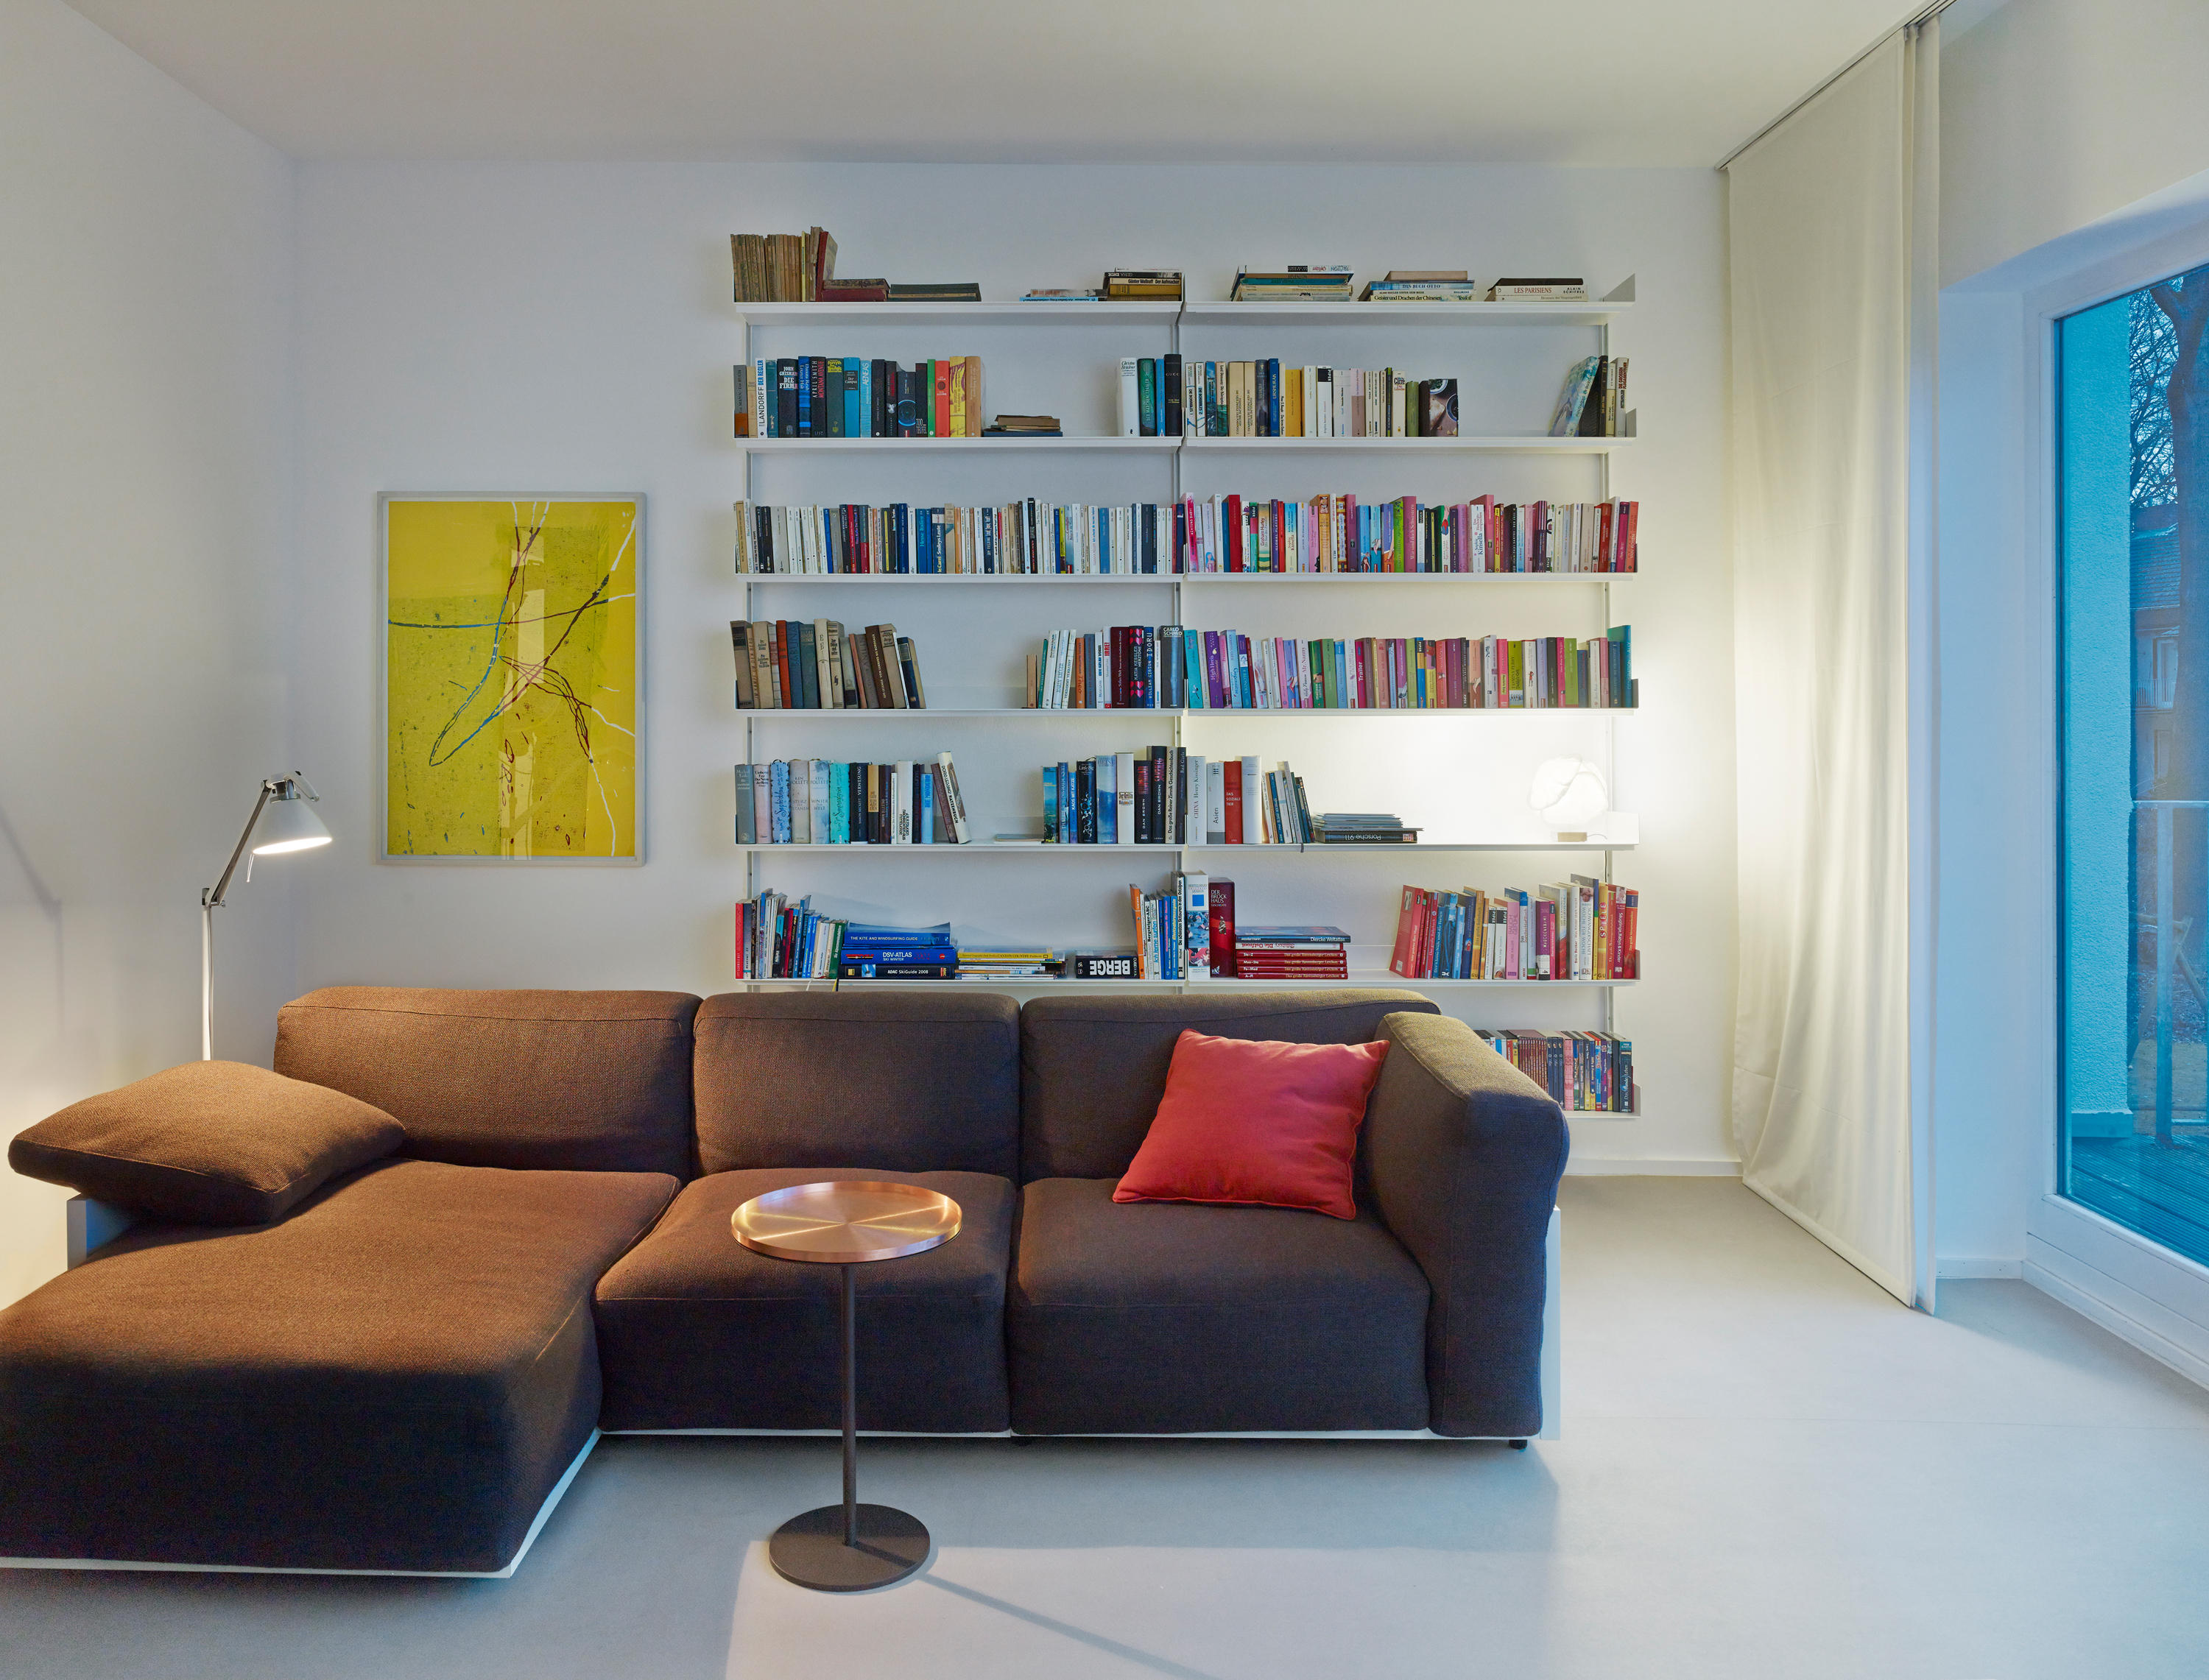 ... System M Shelves By S+ Systemmöbel | Library Shelving Systems ...